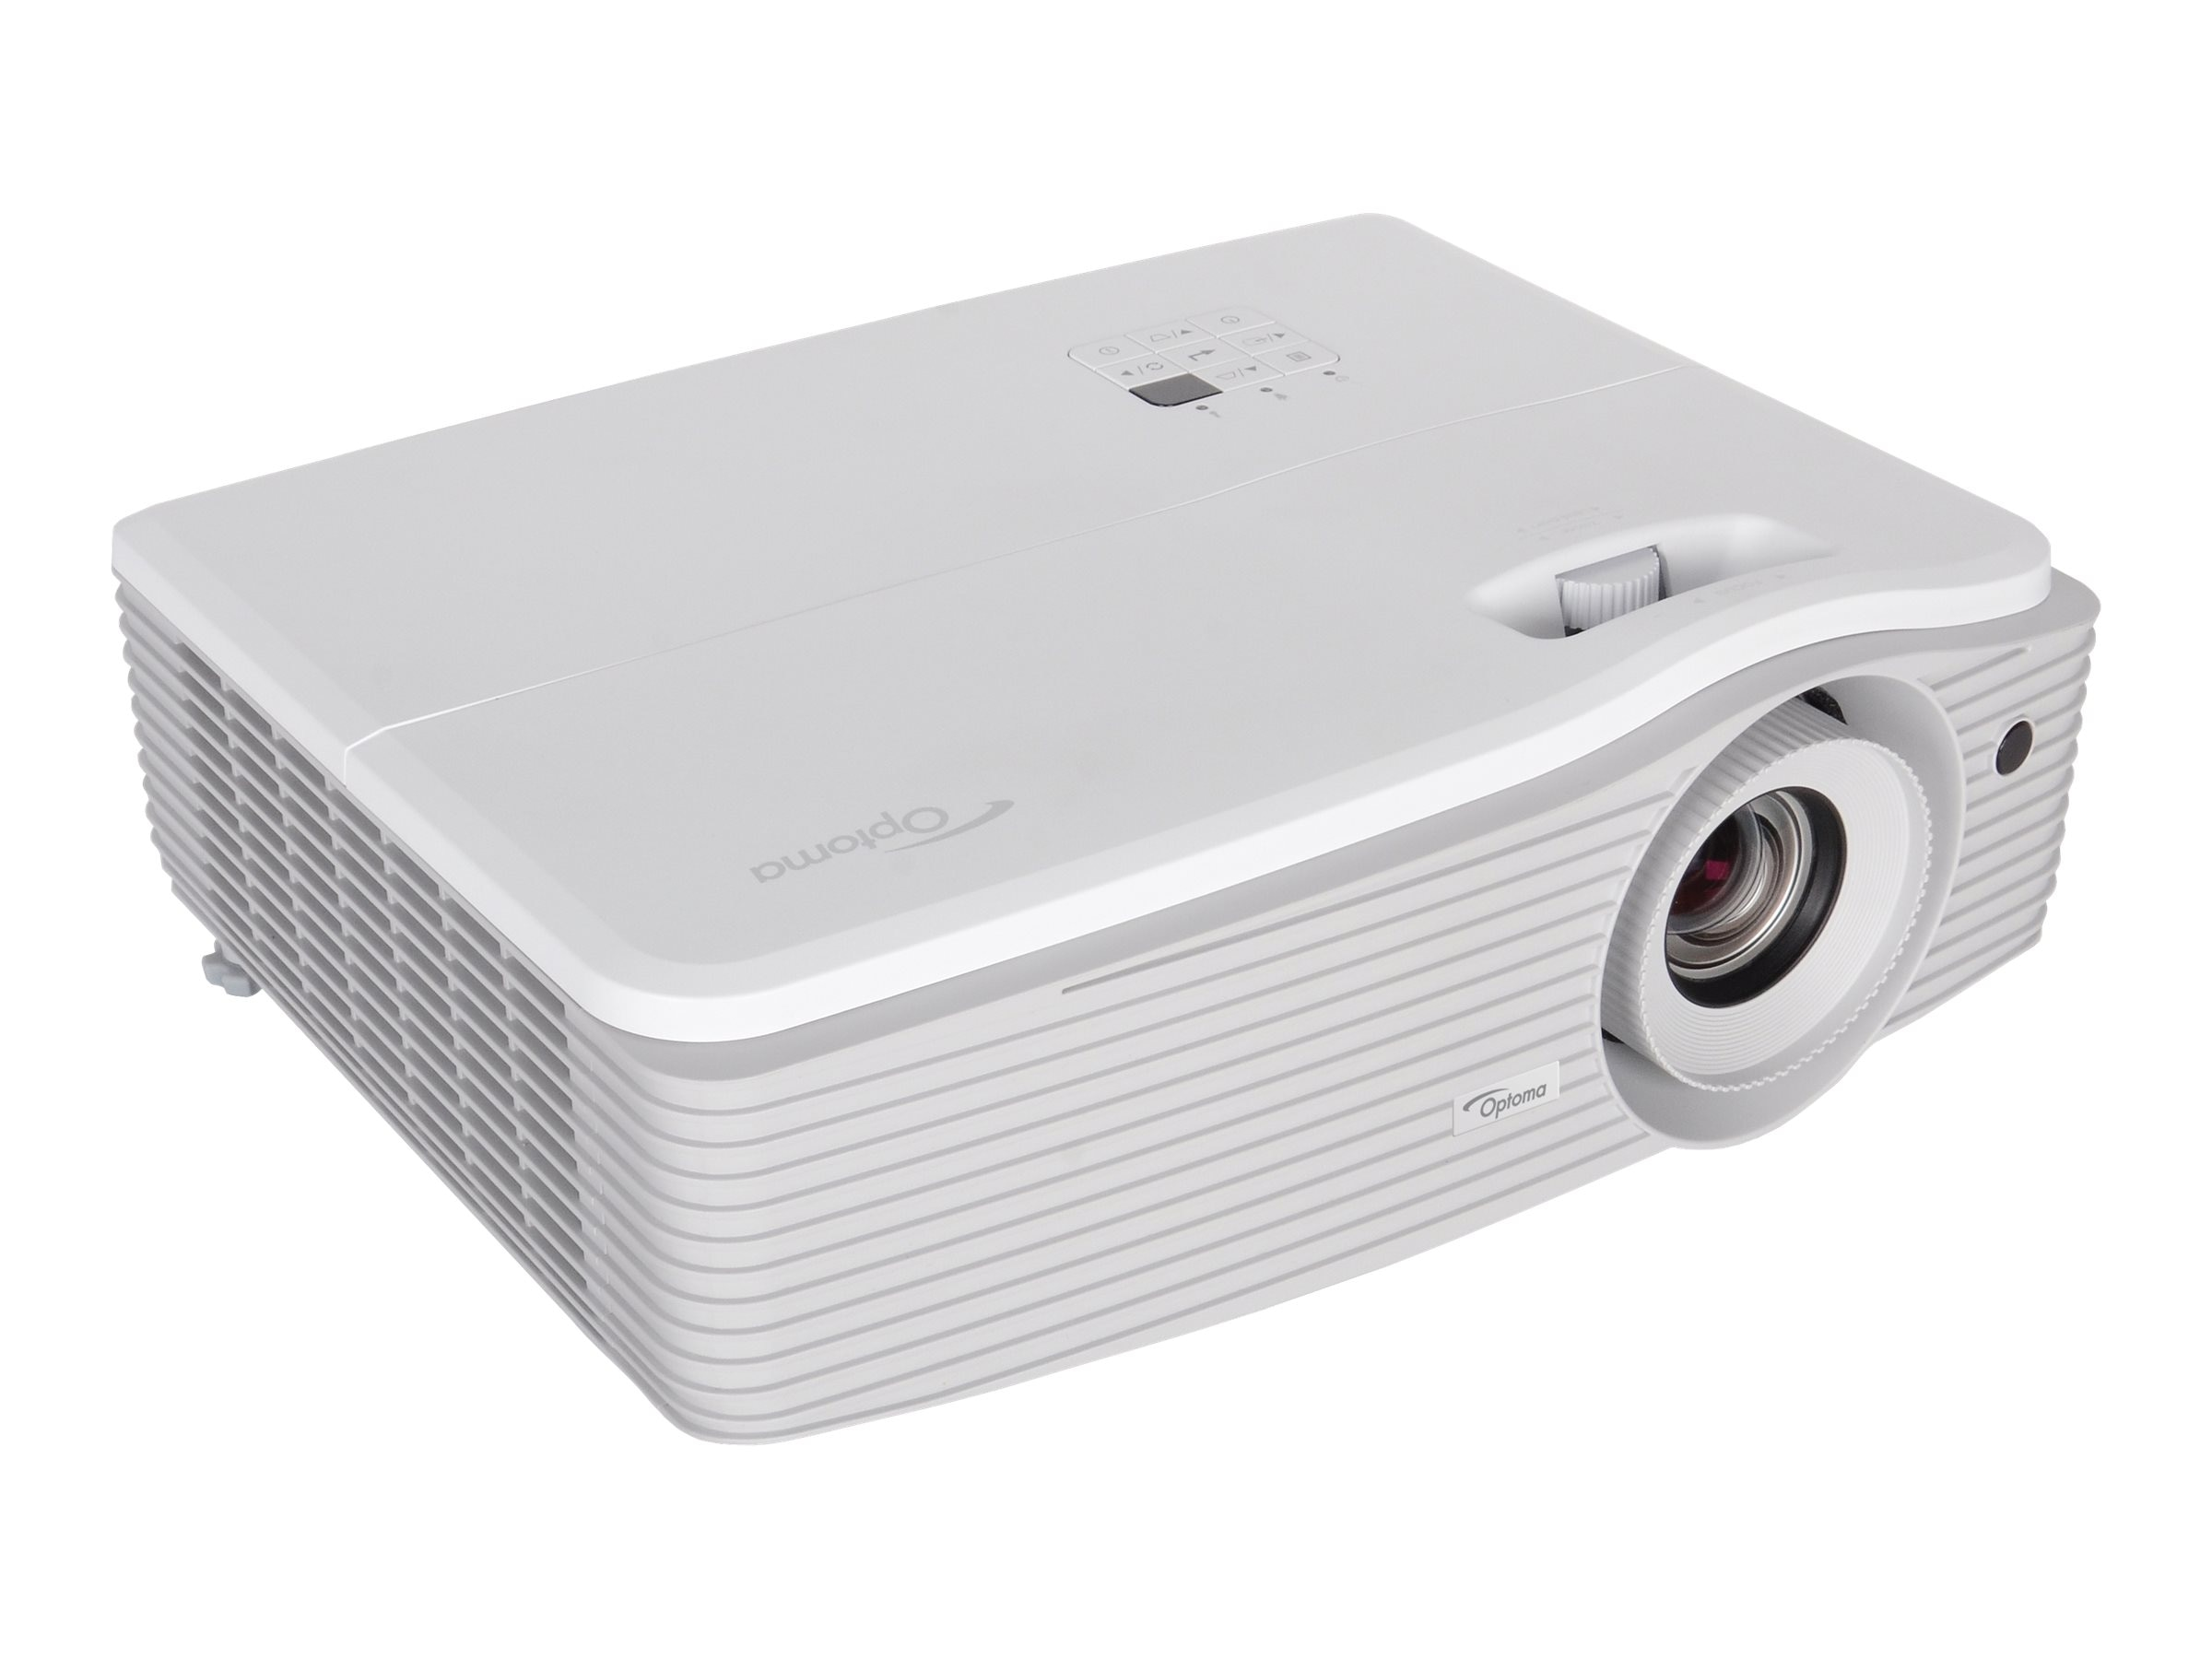 Optoma EH504 108p 3D DLP Projector, 5000 Lumens, White, EH504